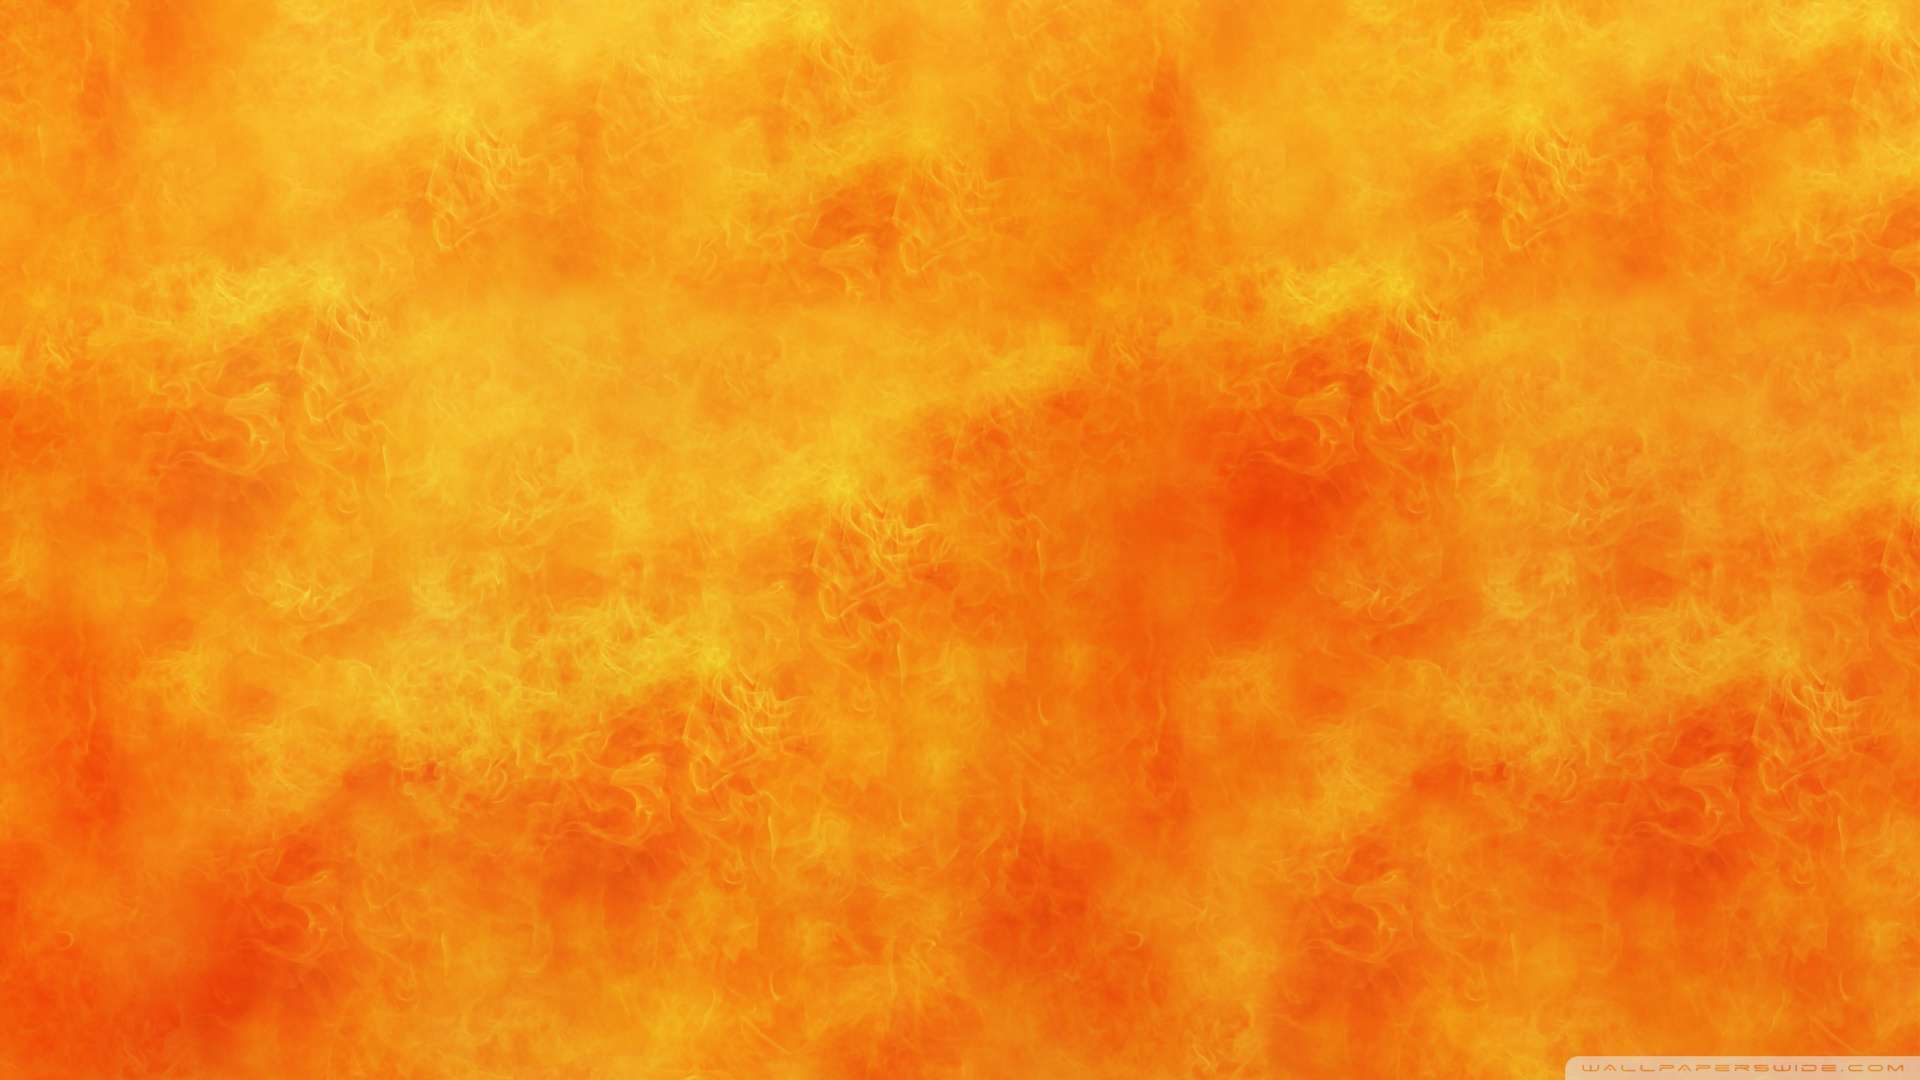 fire background wallpaper 1080p HDjpg 1920x1080